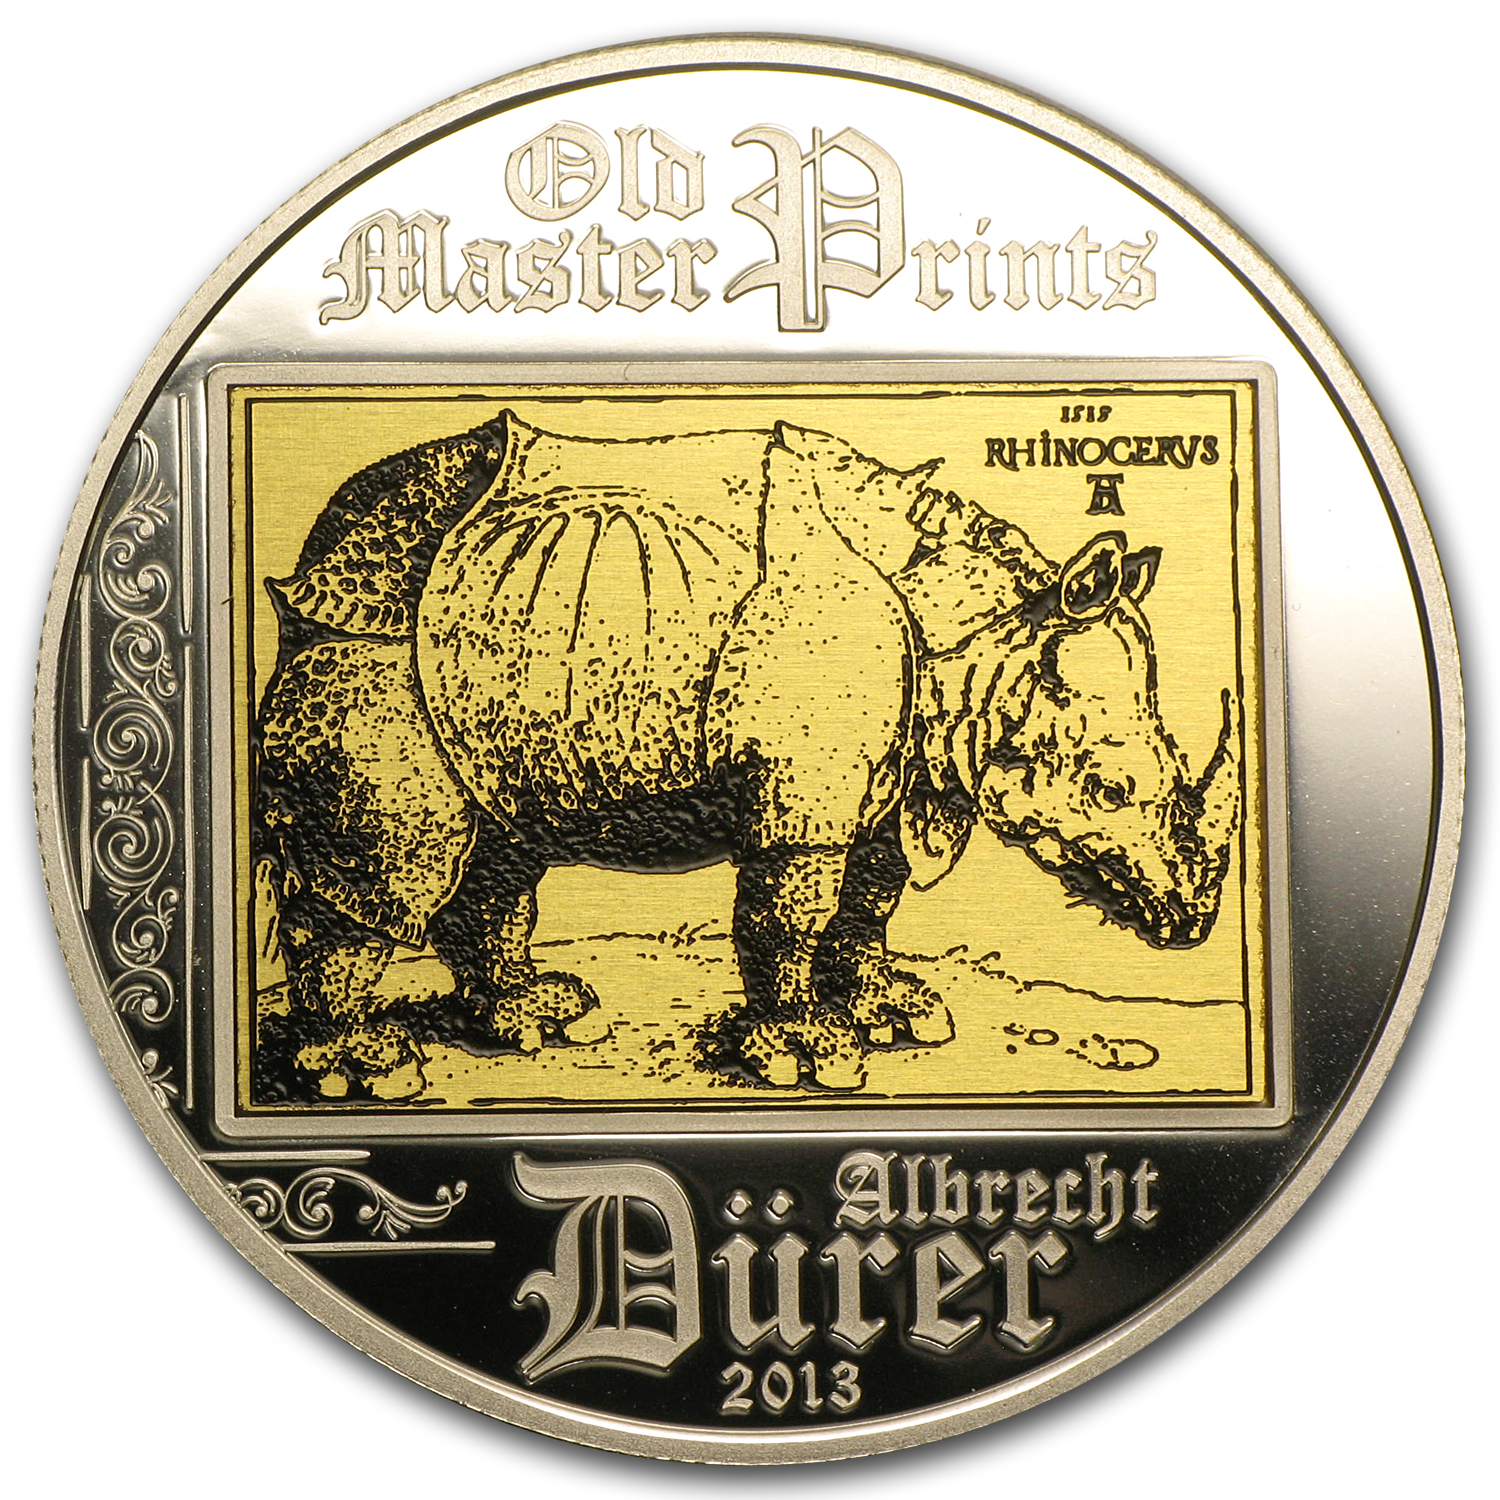 Cook Islands 2013 Silver Proof $5 Albrecht Dürer - Rhinoceros